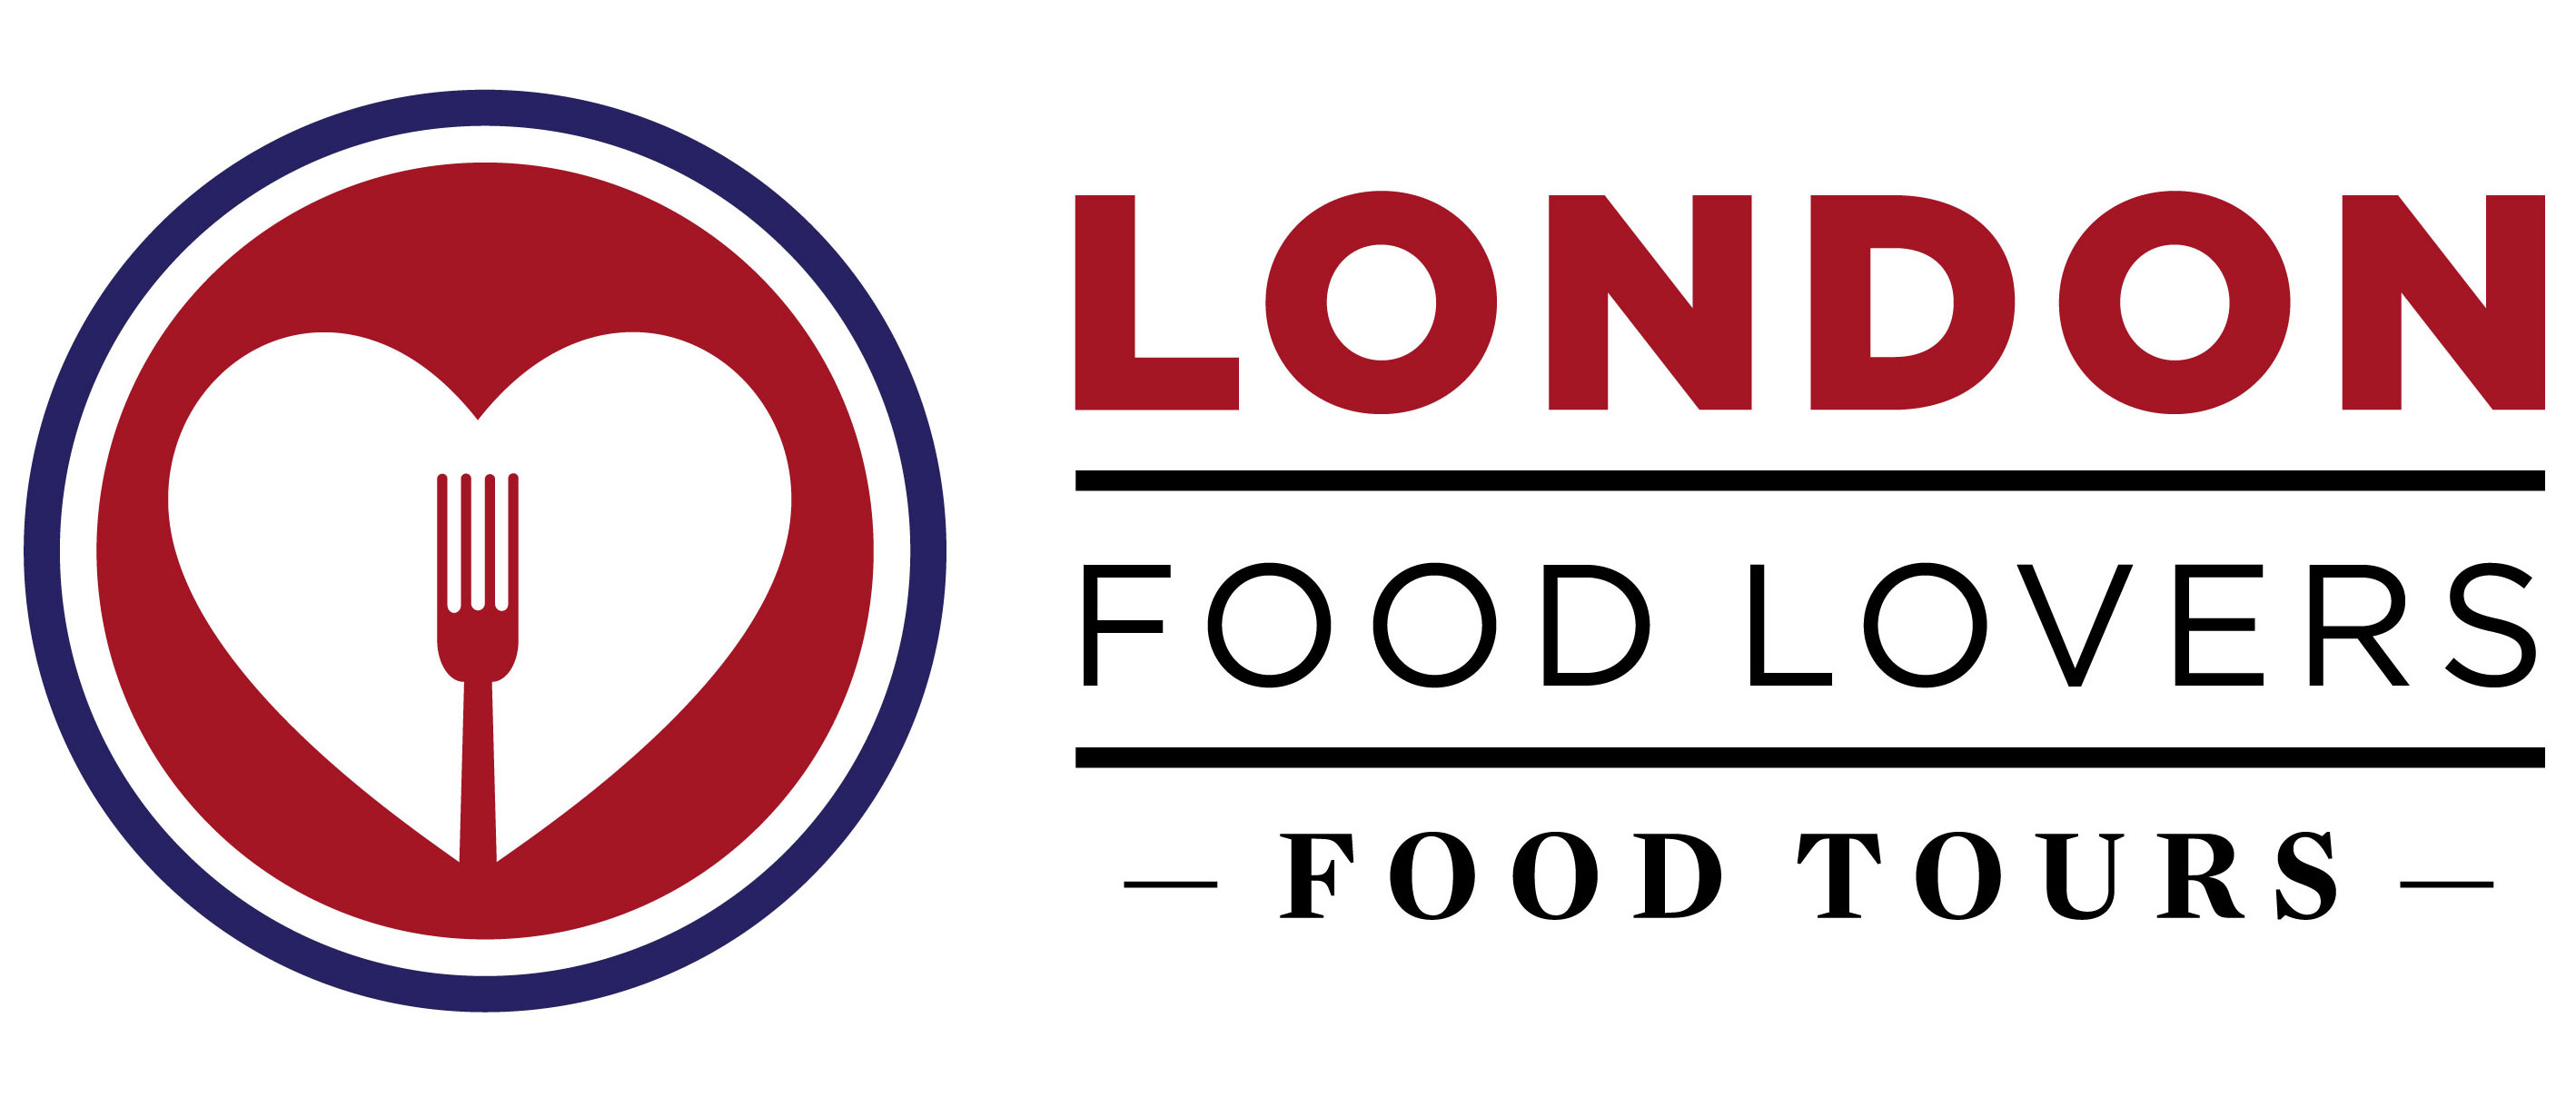 Food Lovers Tours, Ltd.